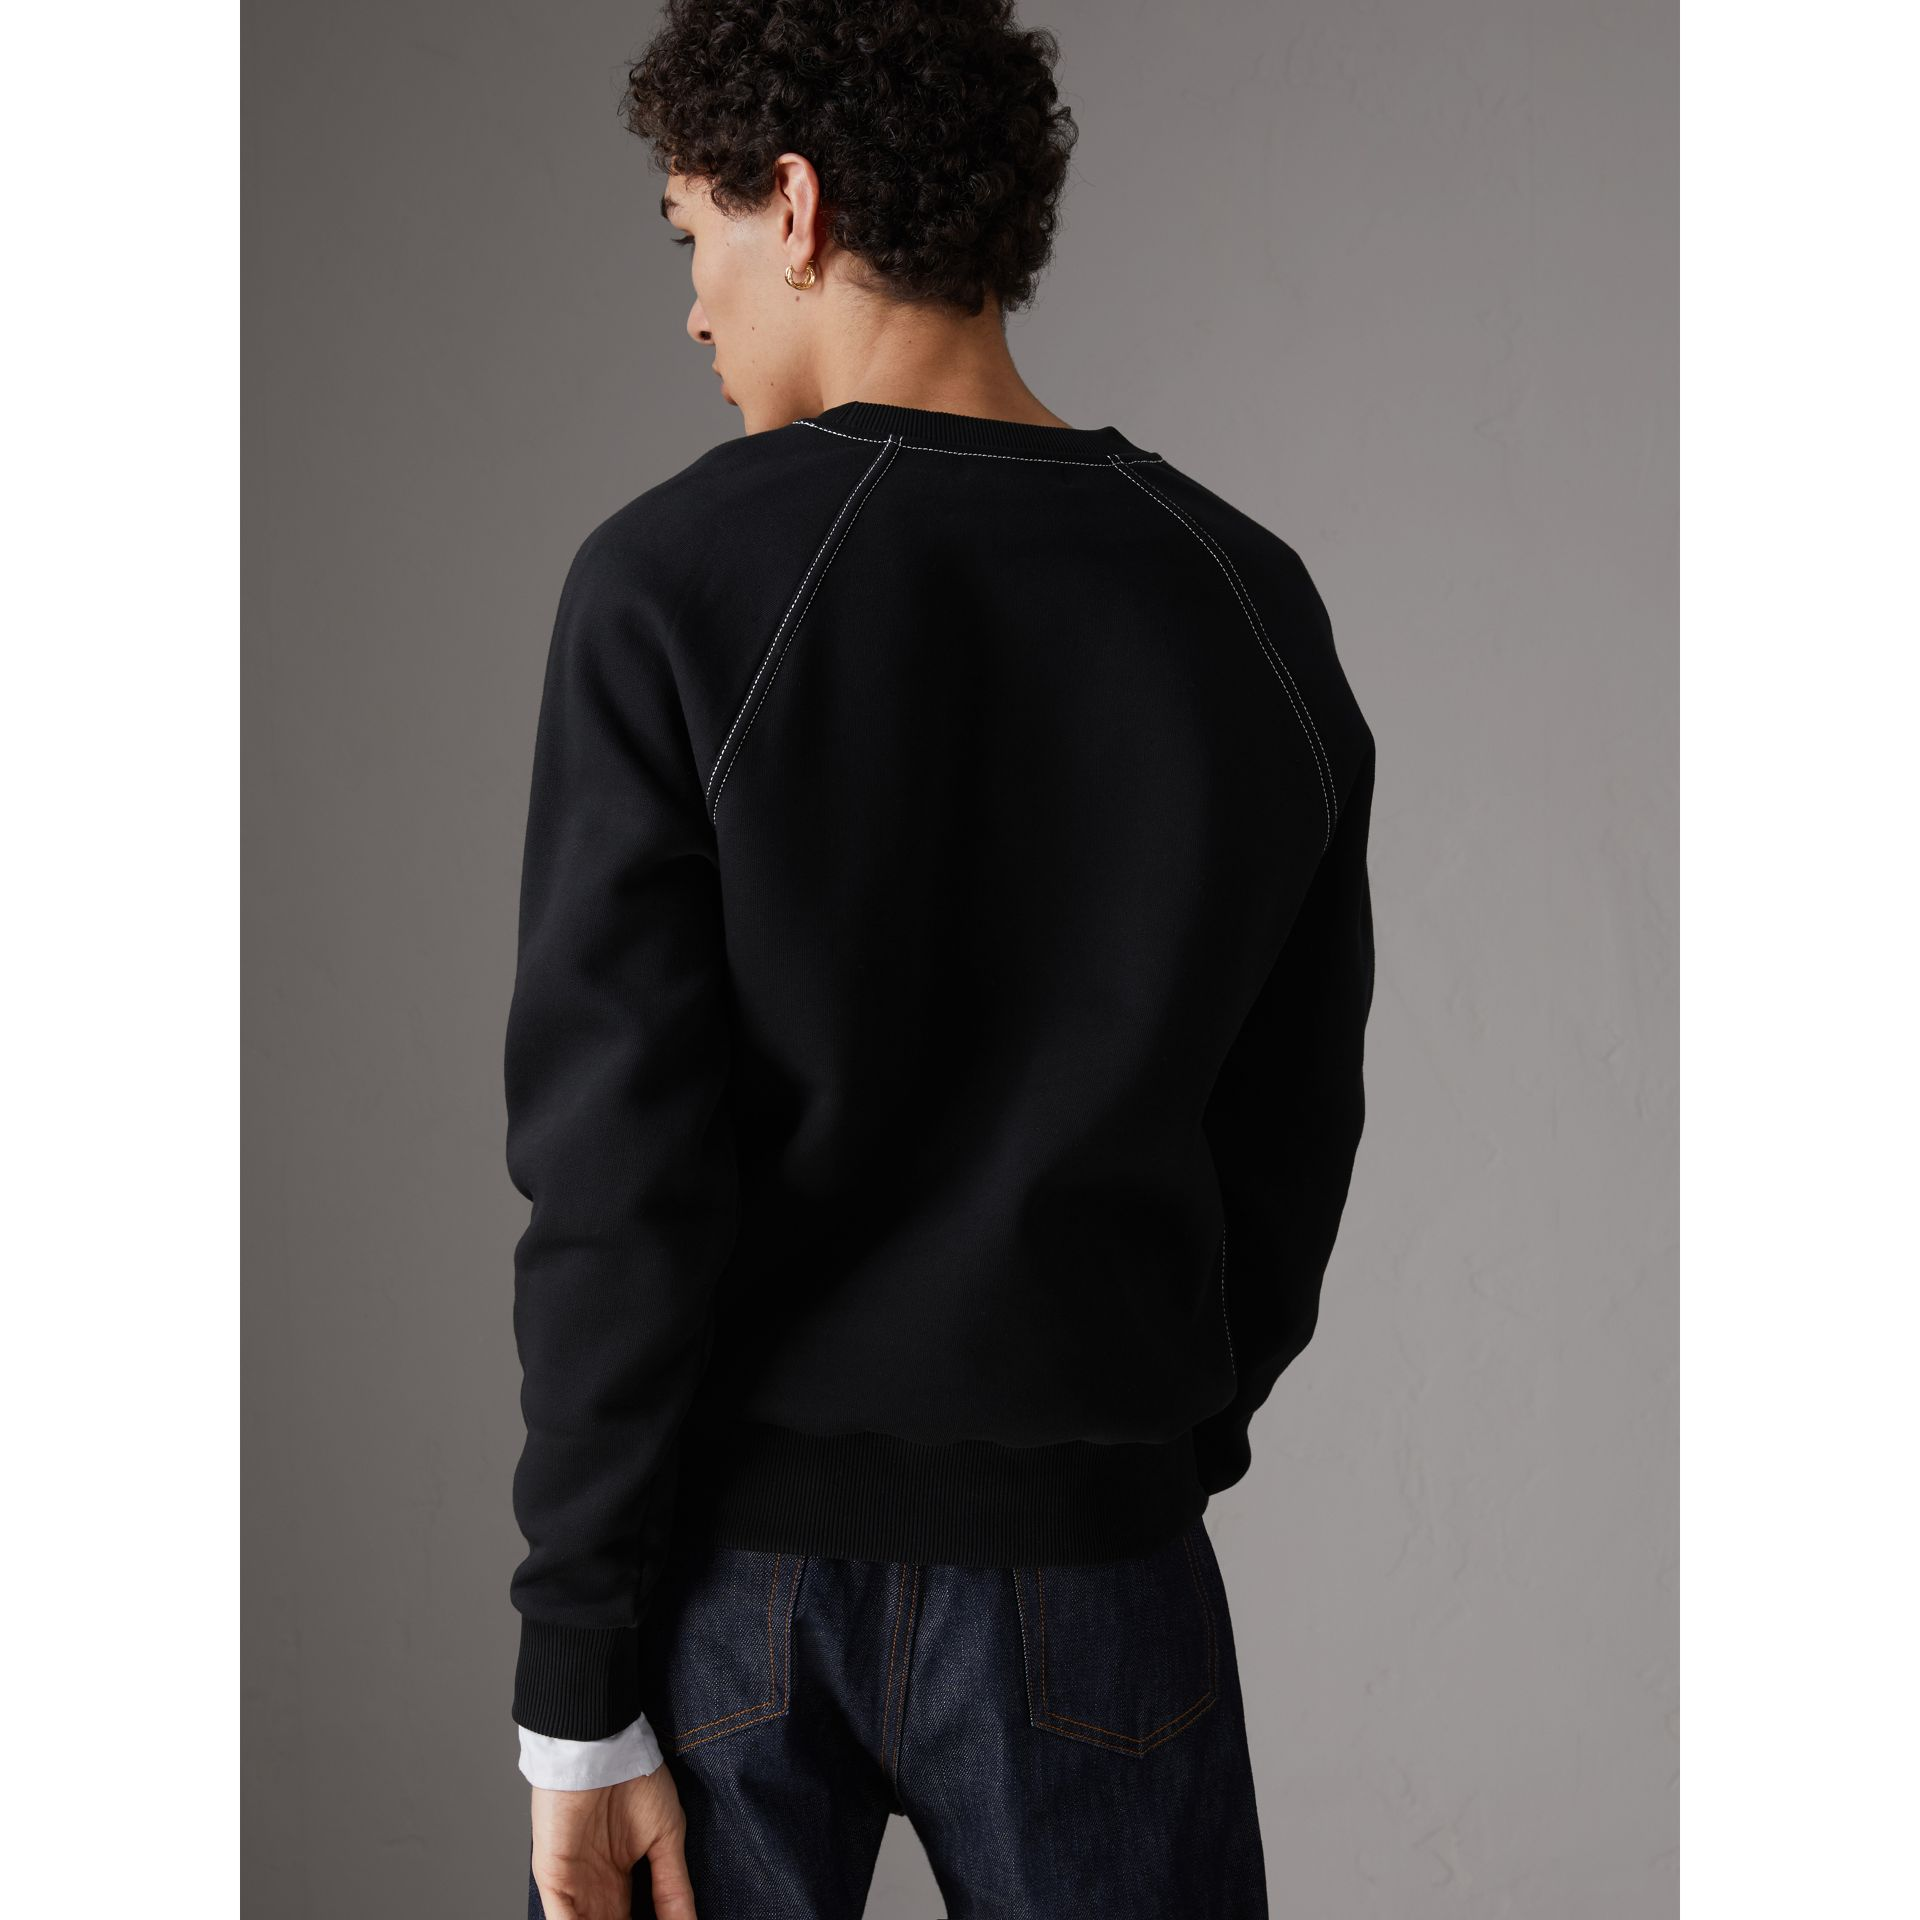 Embroidered Jersey Sweatshirt in Black - Men | Burberry - gallery image 2